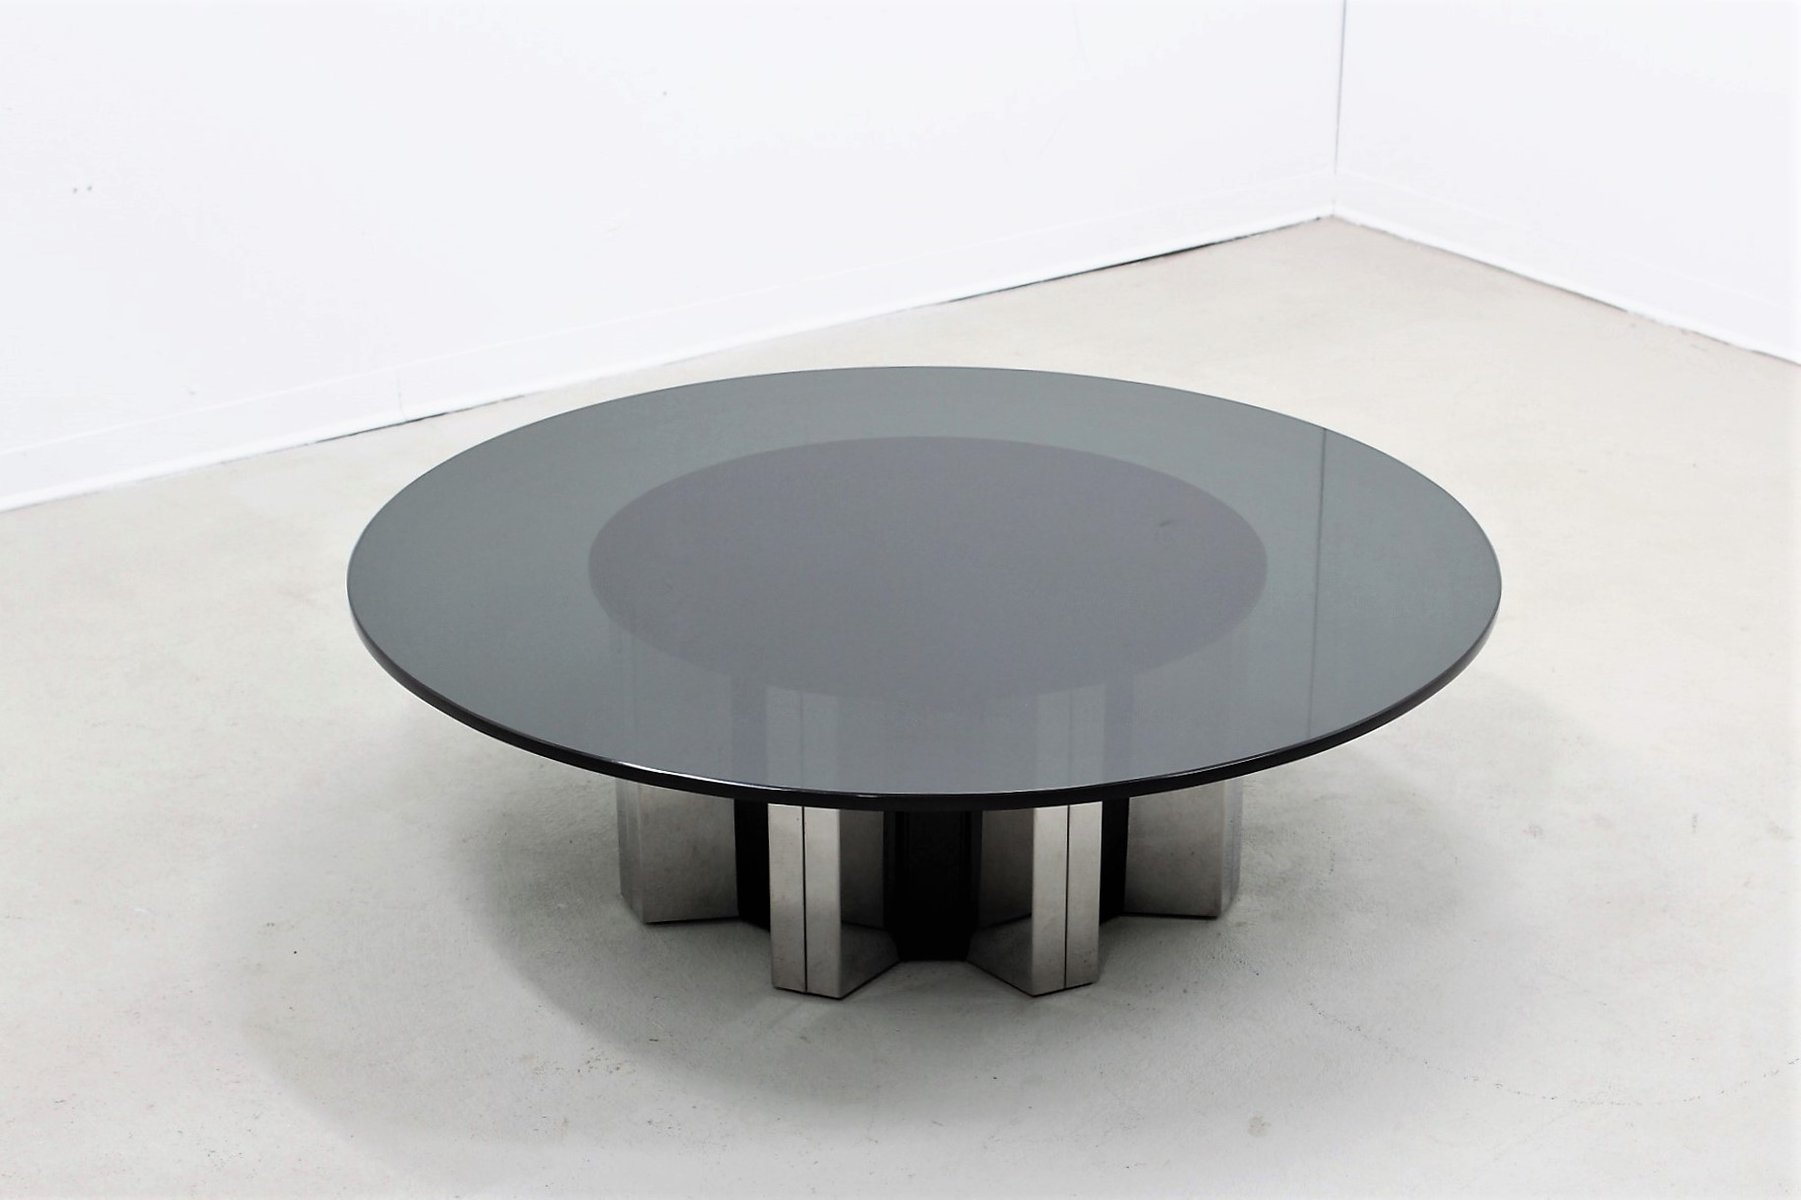 grande table basse ronde par willy rizzo 1970s en vente sur pamono. Black Bedroom Furniture Sets. Home Design Ideas